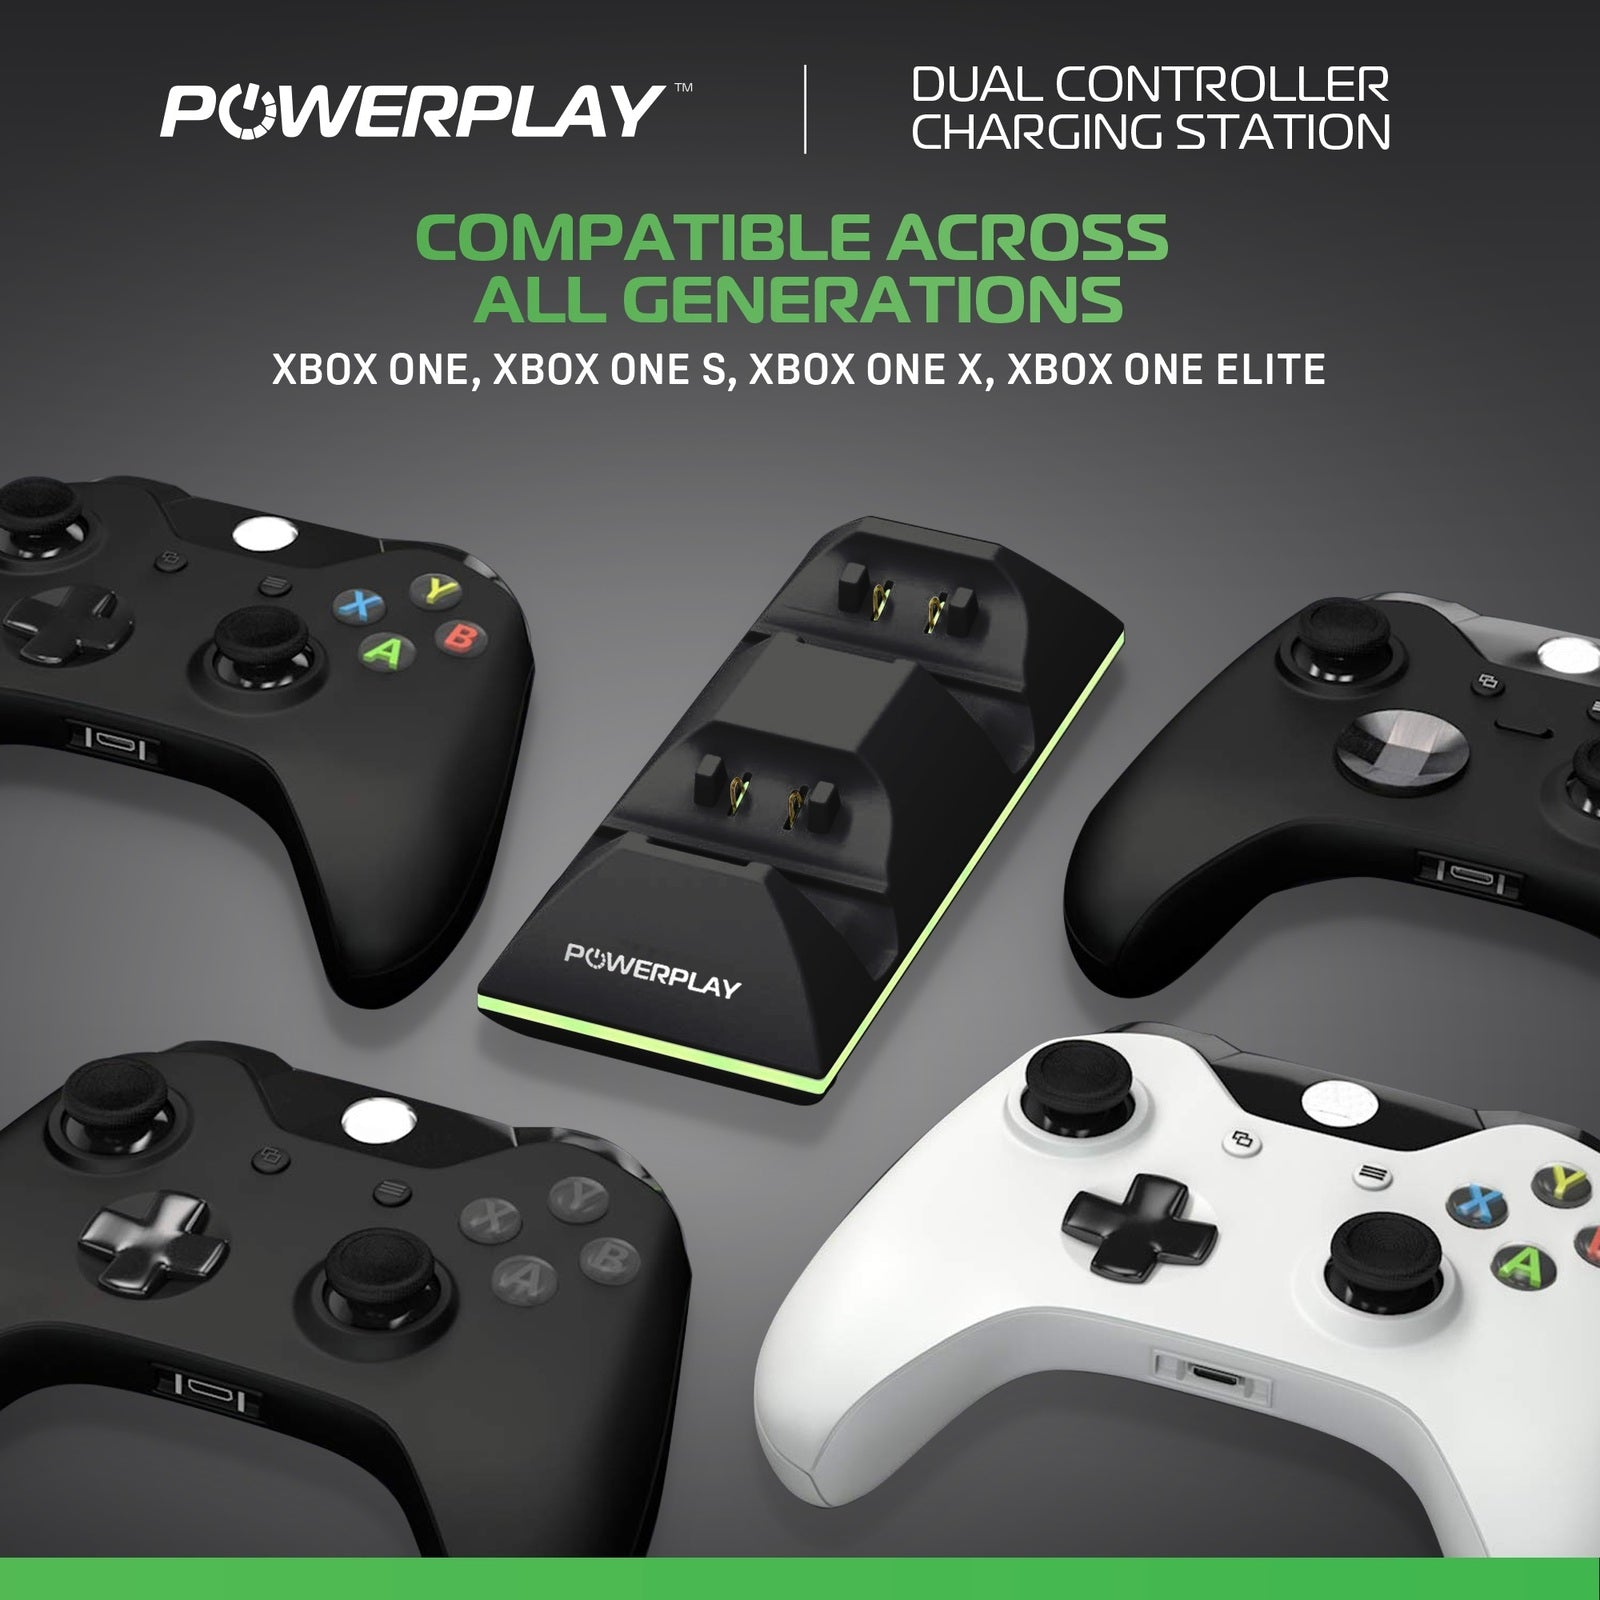 PowerPlay Xbox One Dual Controller Charging Station (Black) - Xbox One